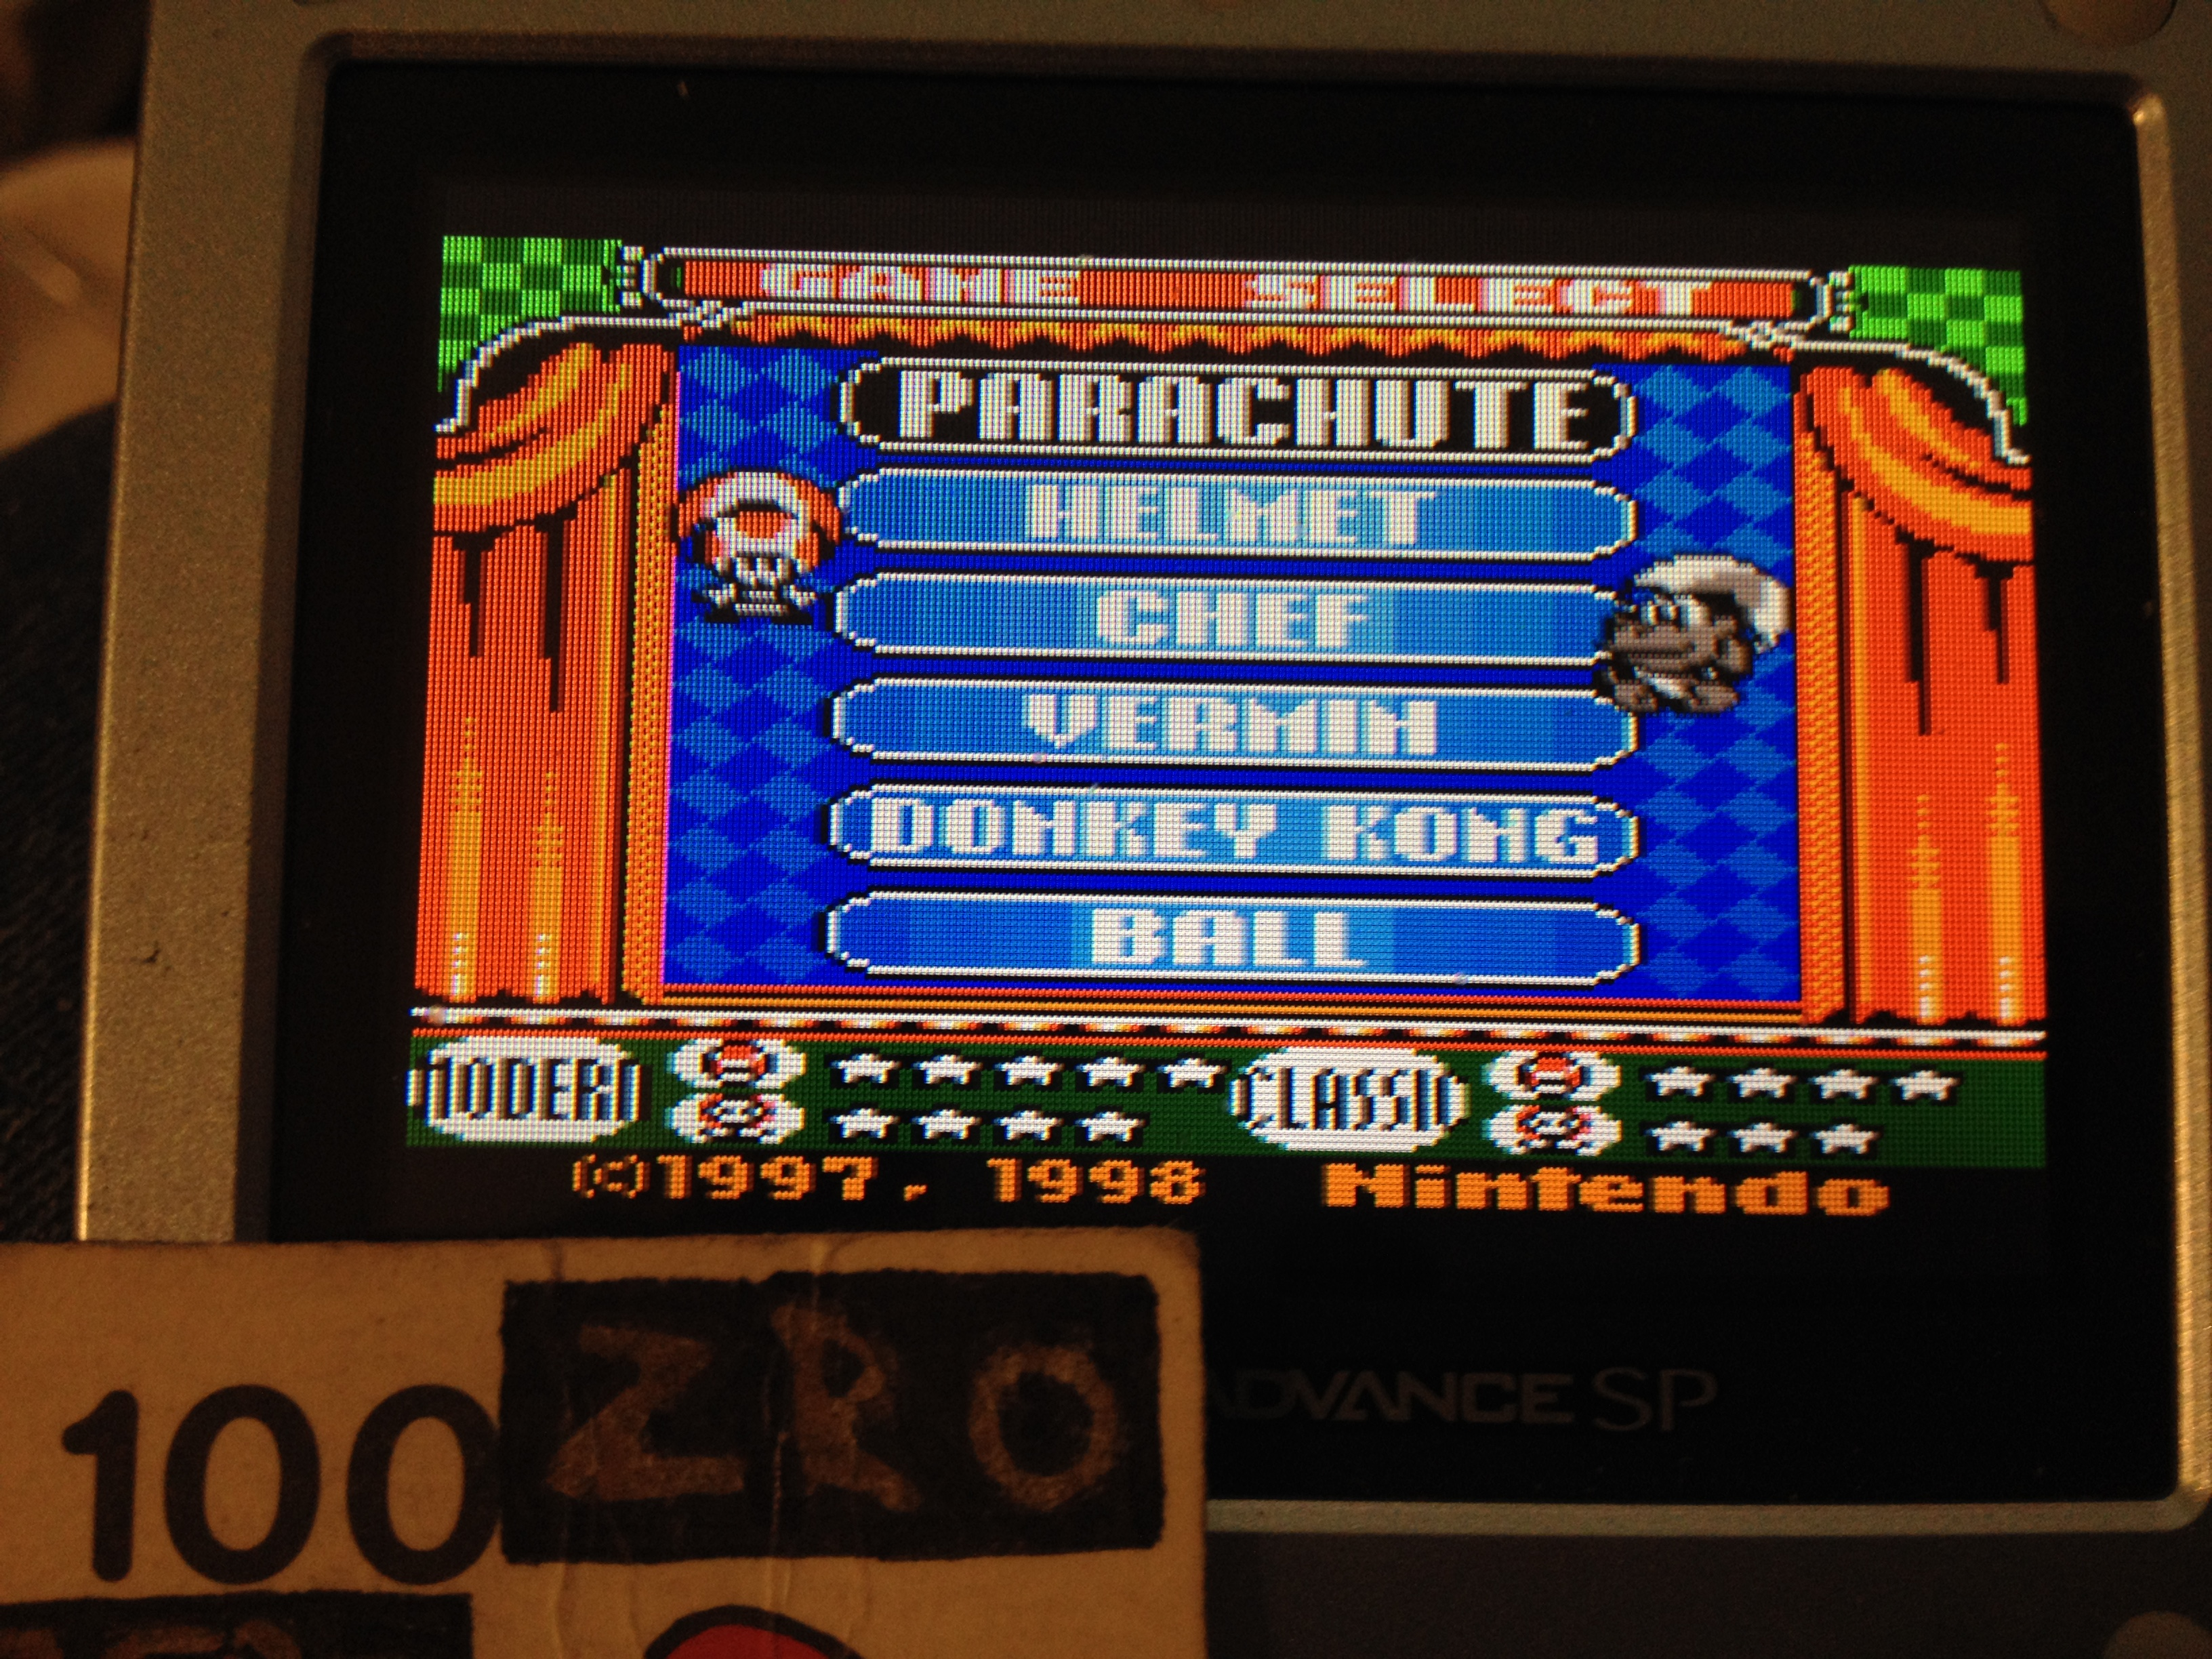 Game & Watch Gallery 2: Parachute: Modern: Hard 908 points